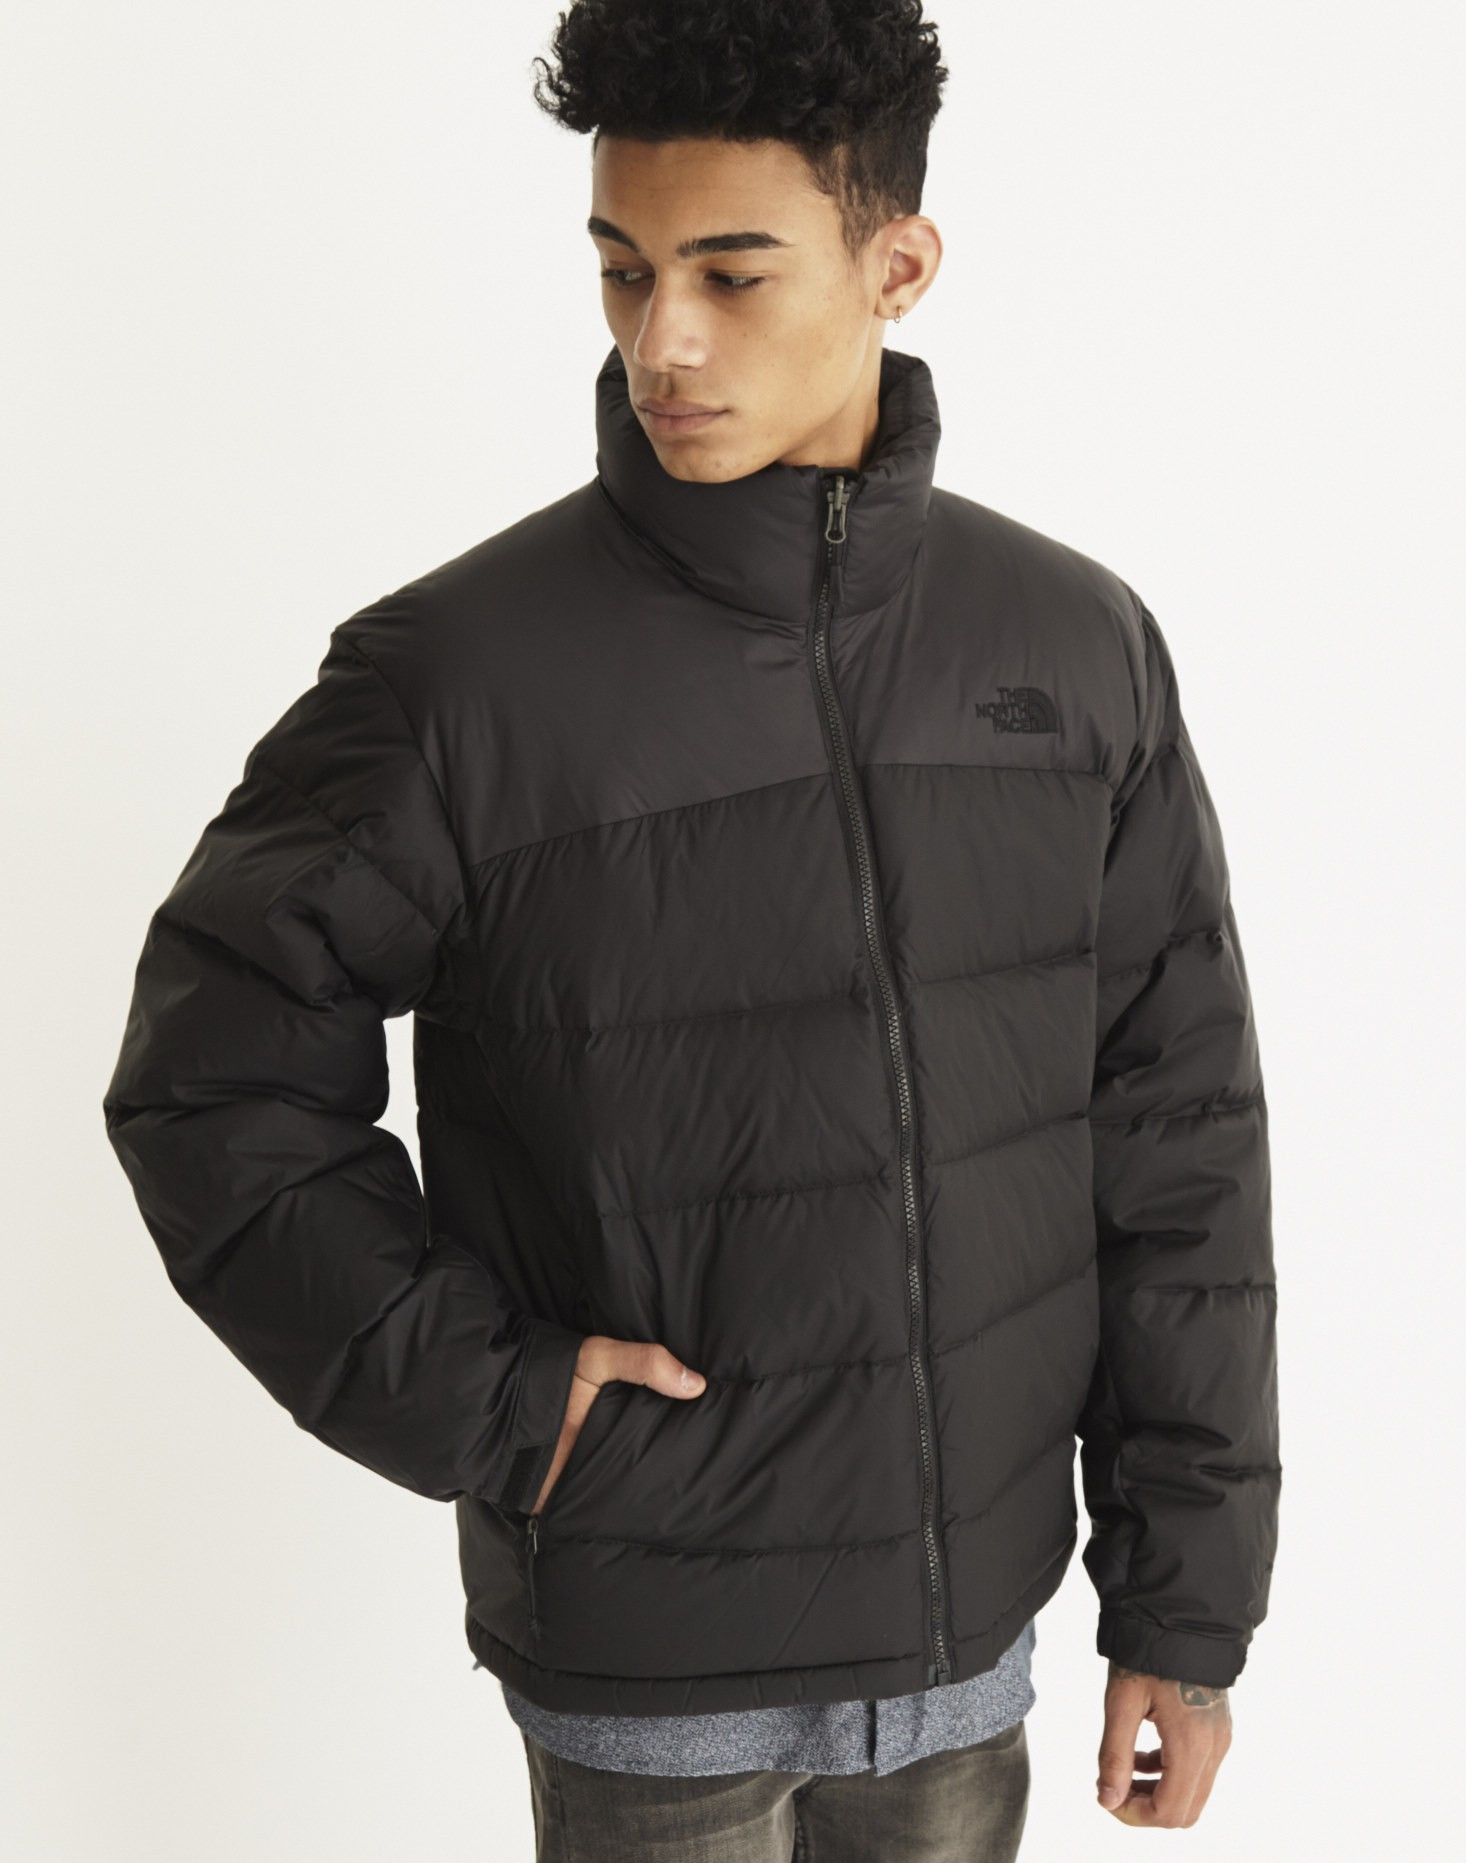 the north face nuptse 2 padded jacket in black for men lyst